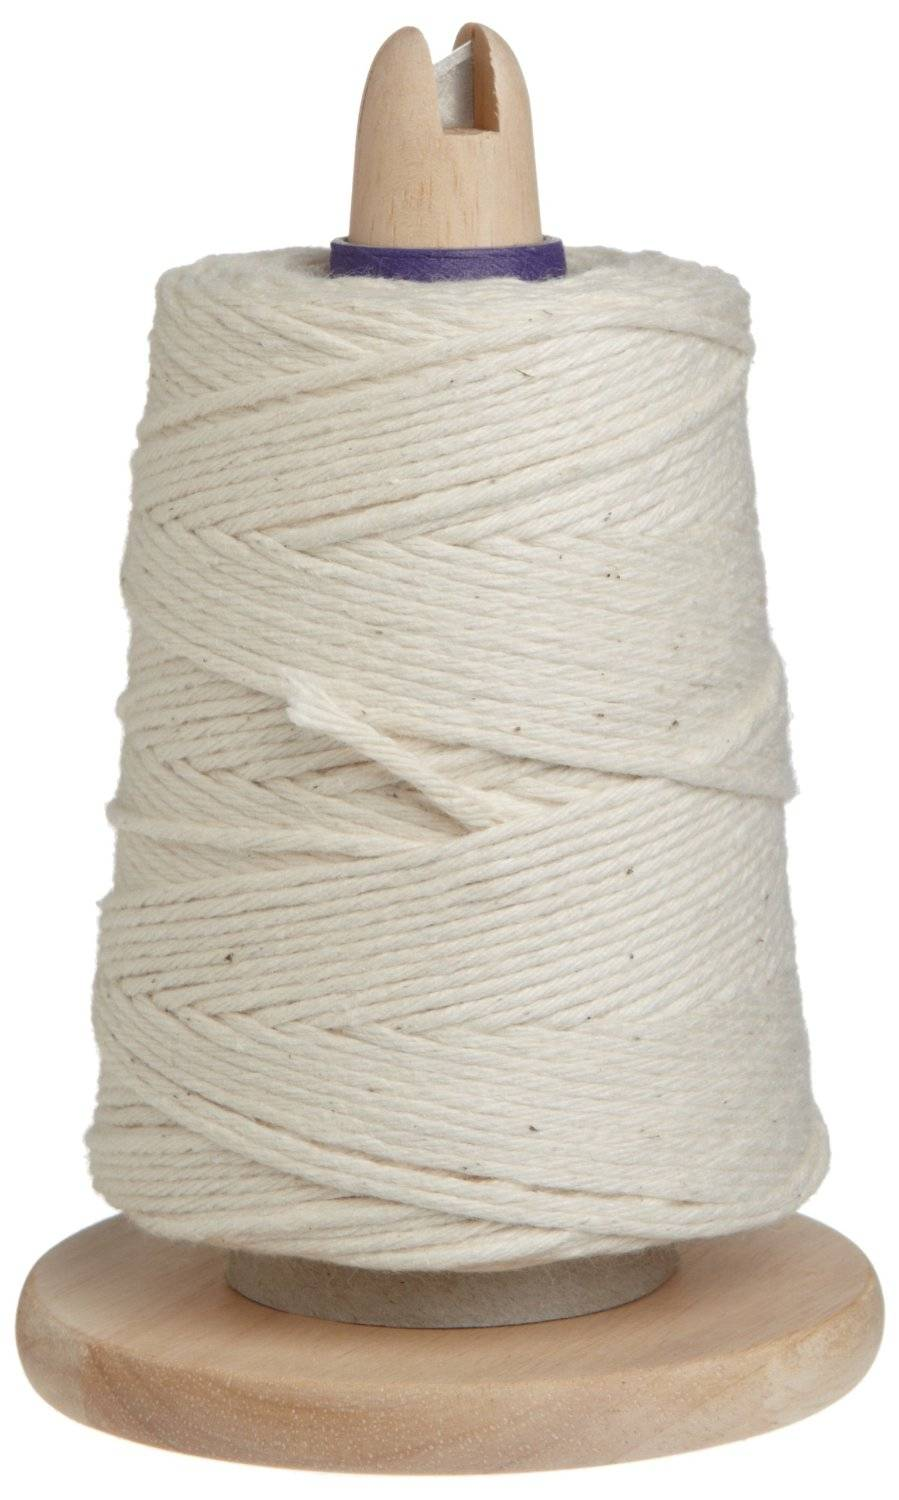 Regency Rw1675 Cooking Twine With Wooden Holder & Metal Cutter, 550'